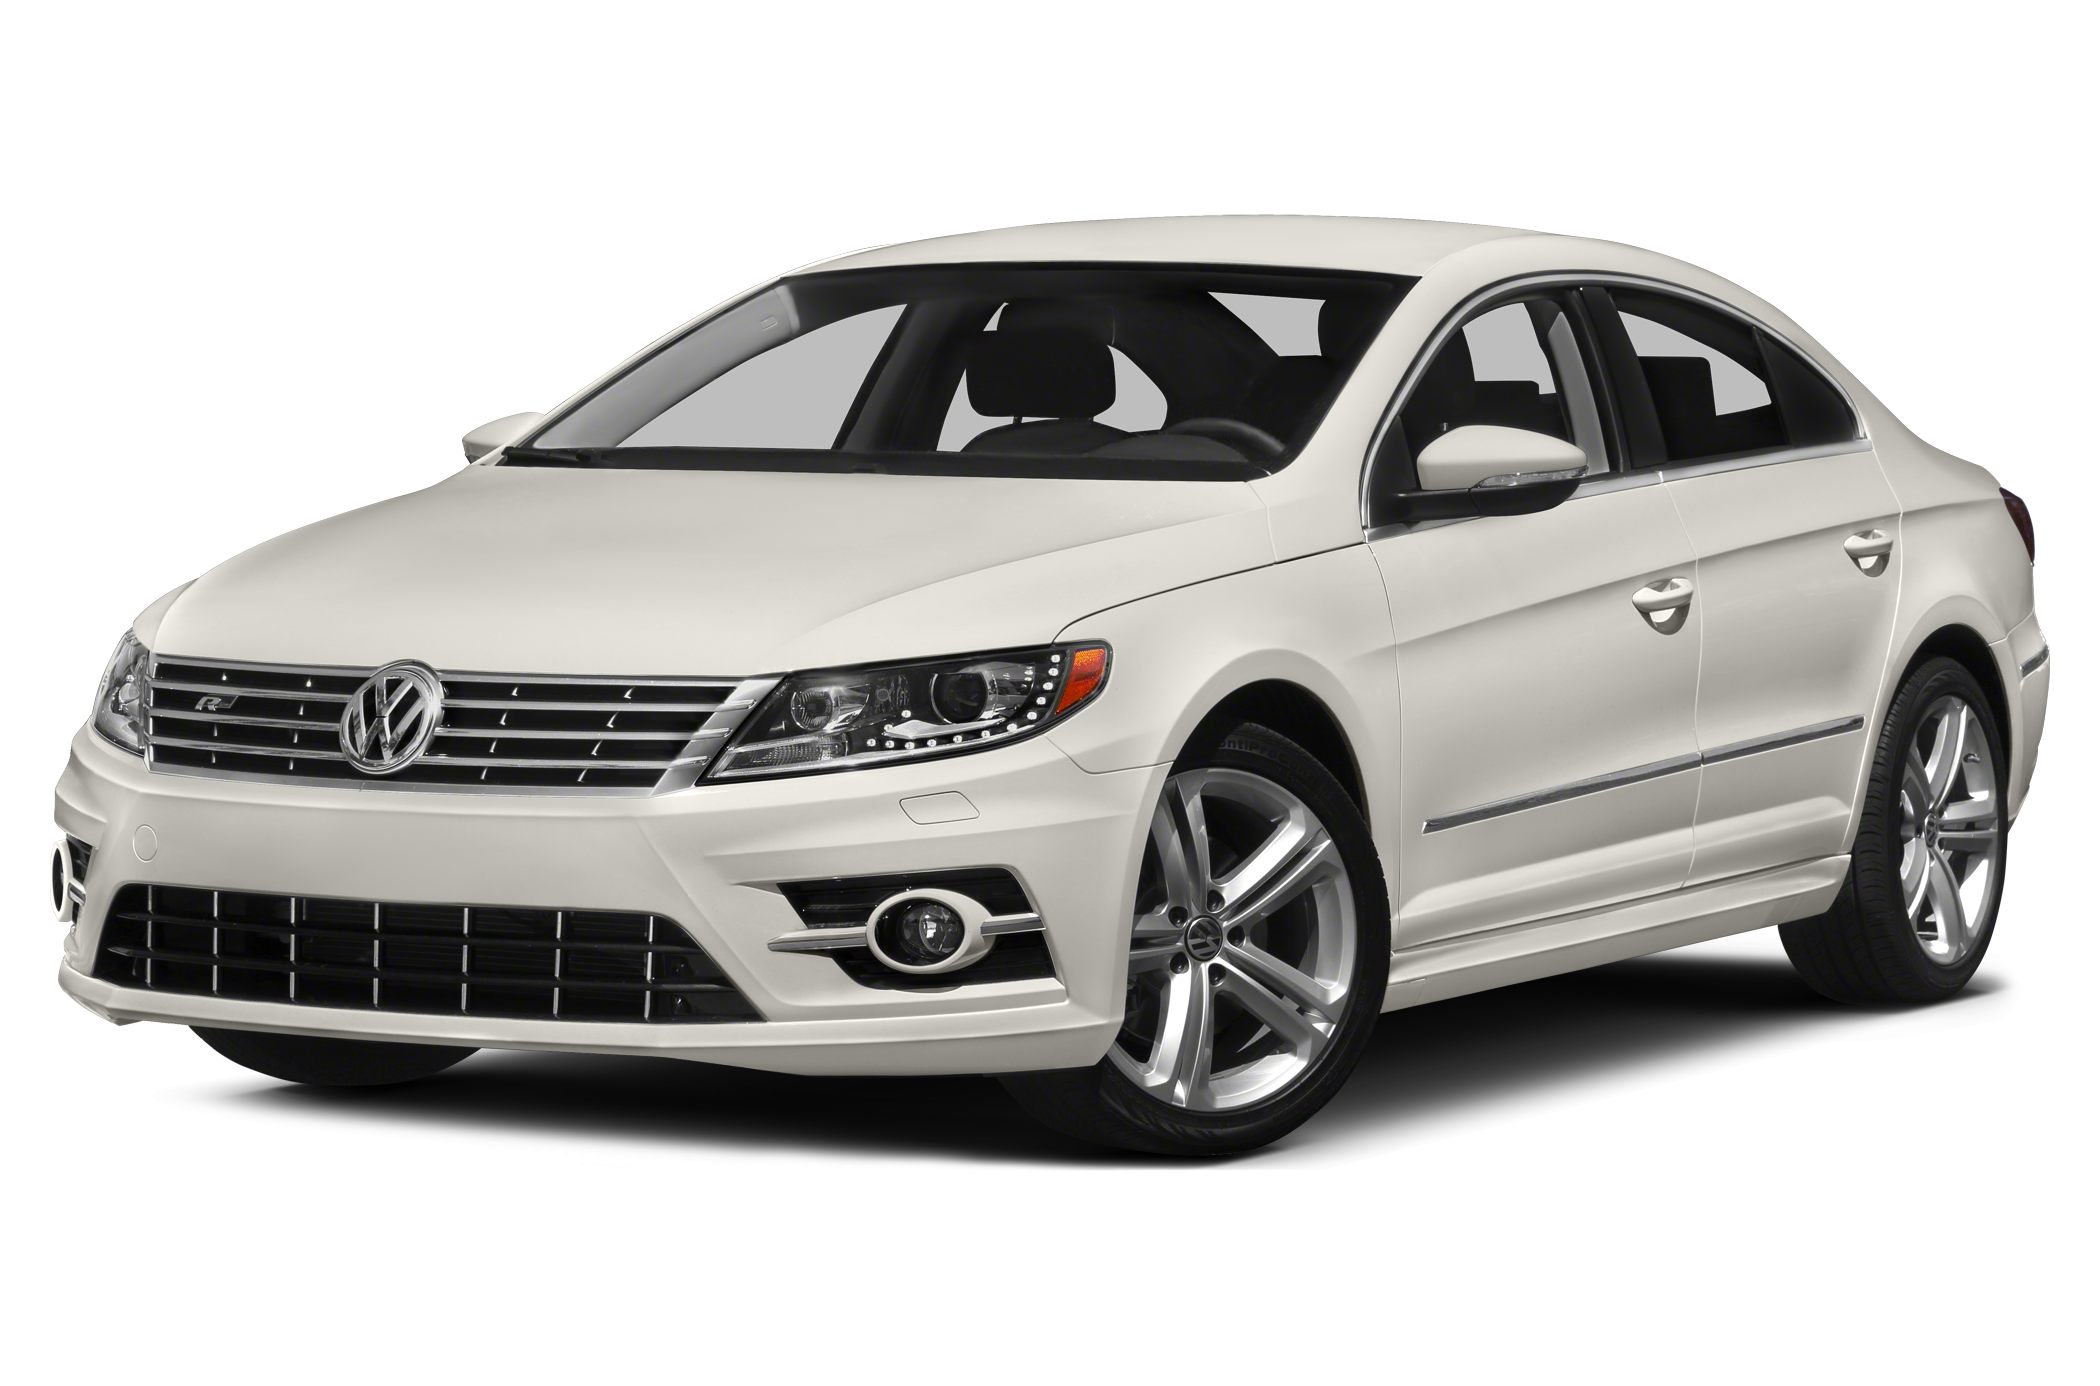 2015 Volkswagen CC 2.0T R-Line Sedan for sale in Vienna for $35,890 with 0 miles.